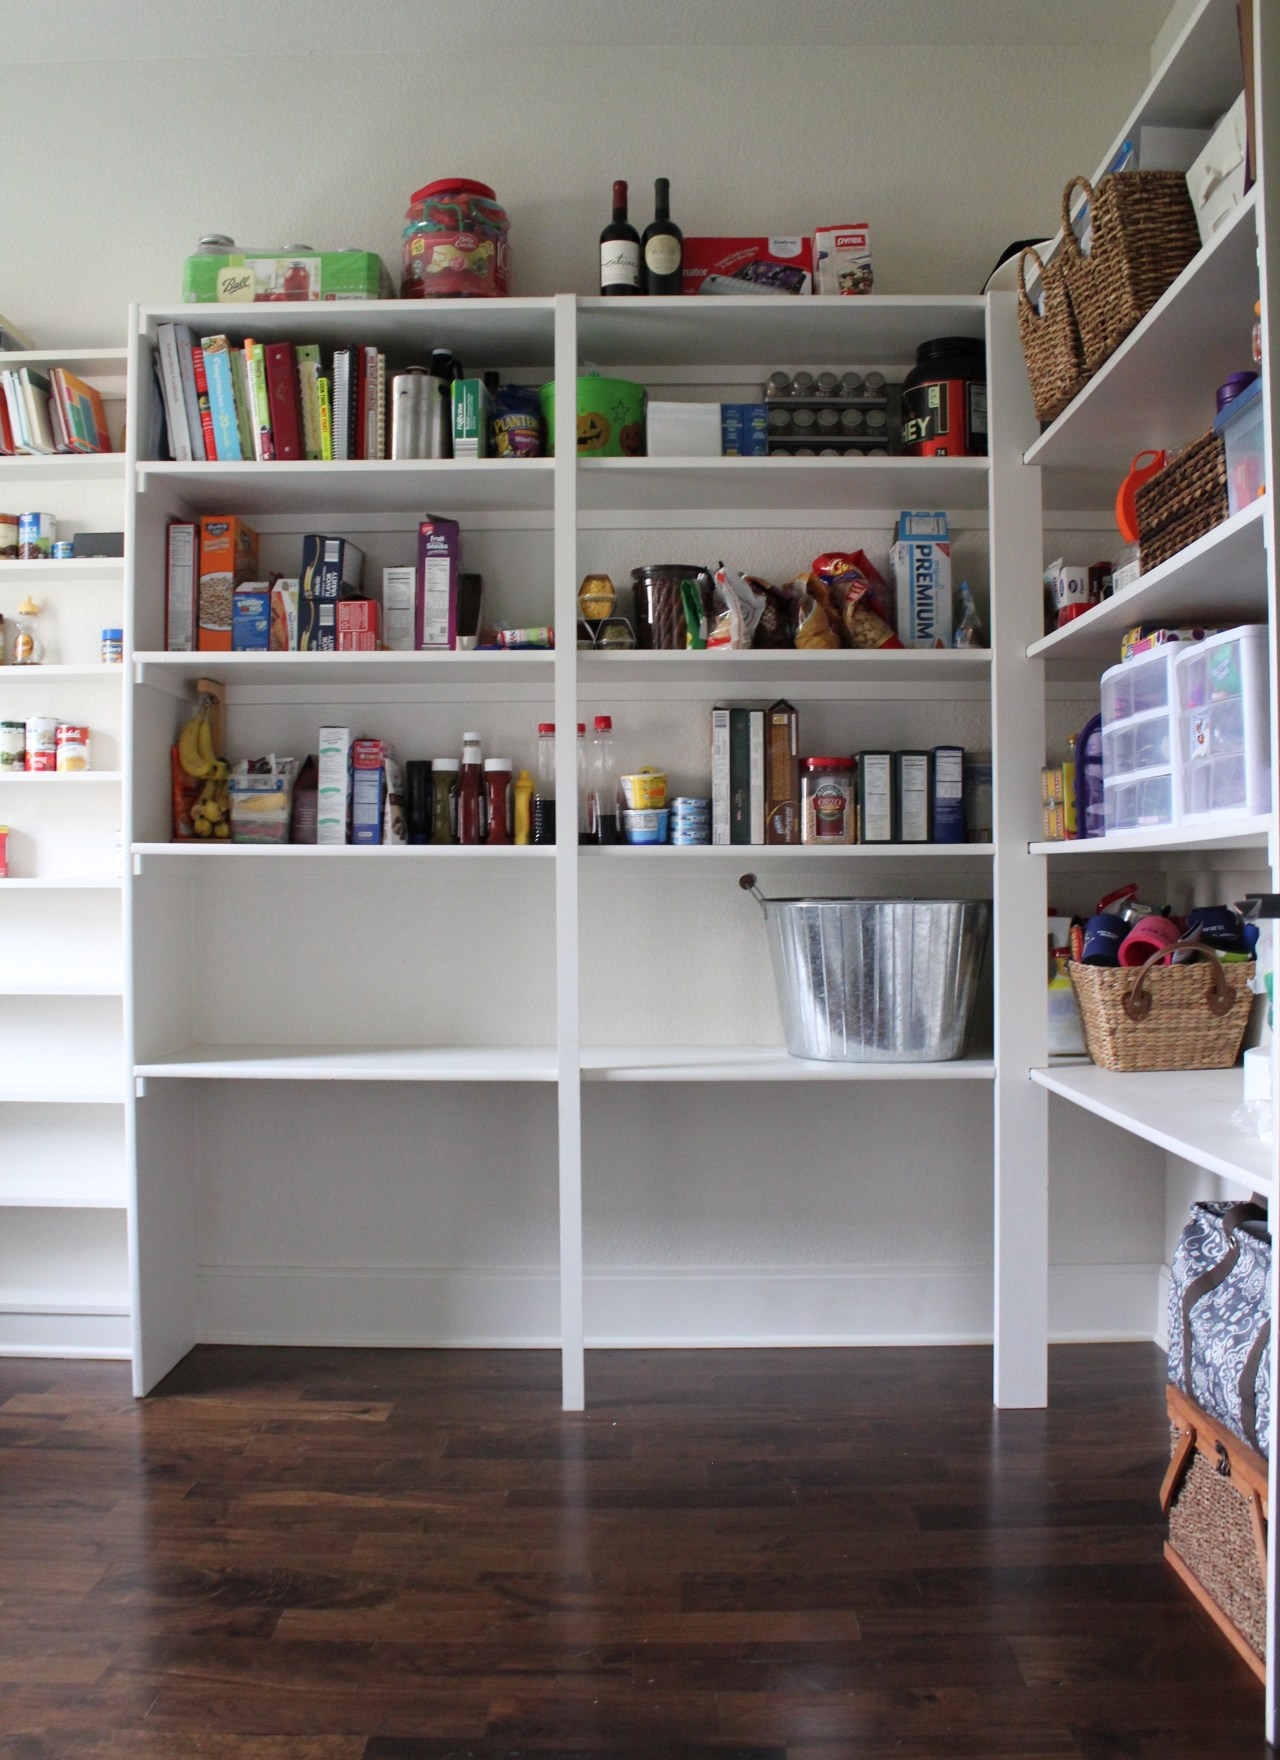 Home Tour: Mudroom, Pantry & Powder Room